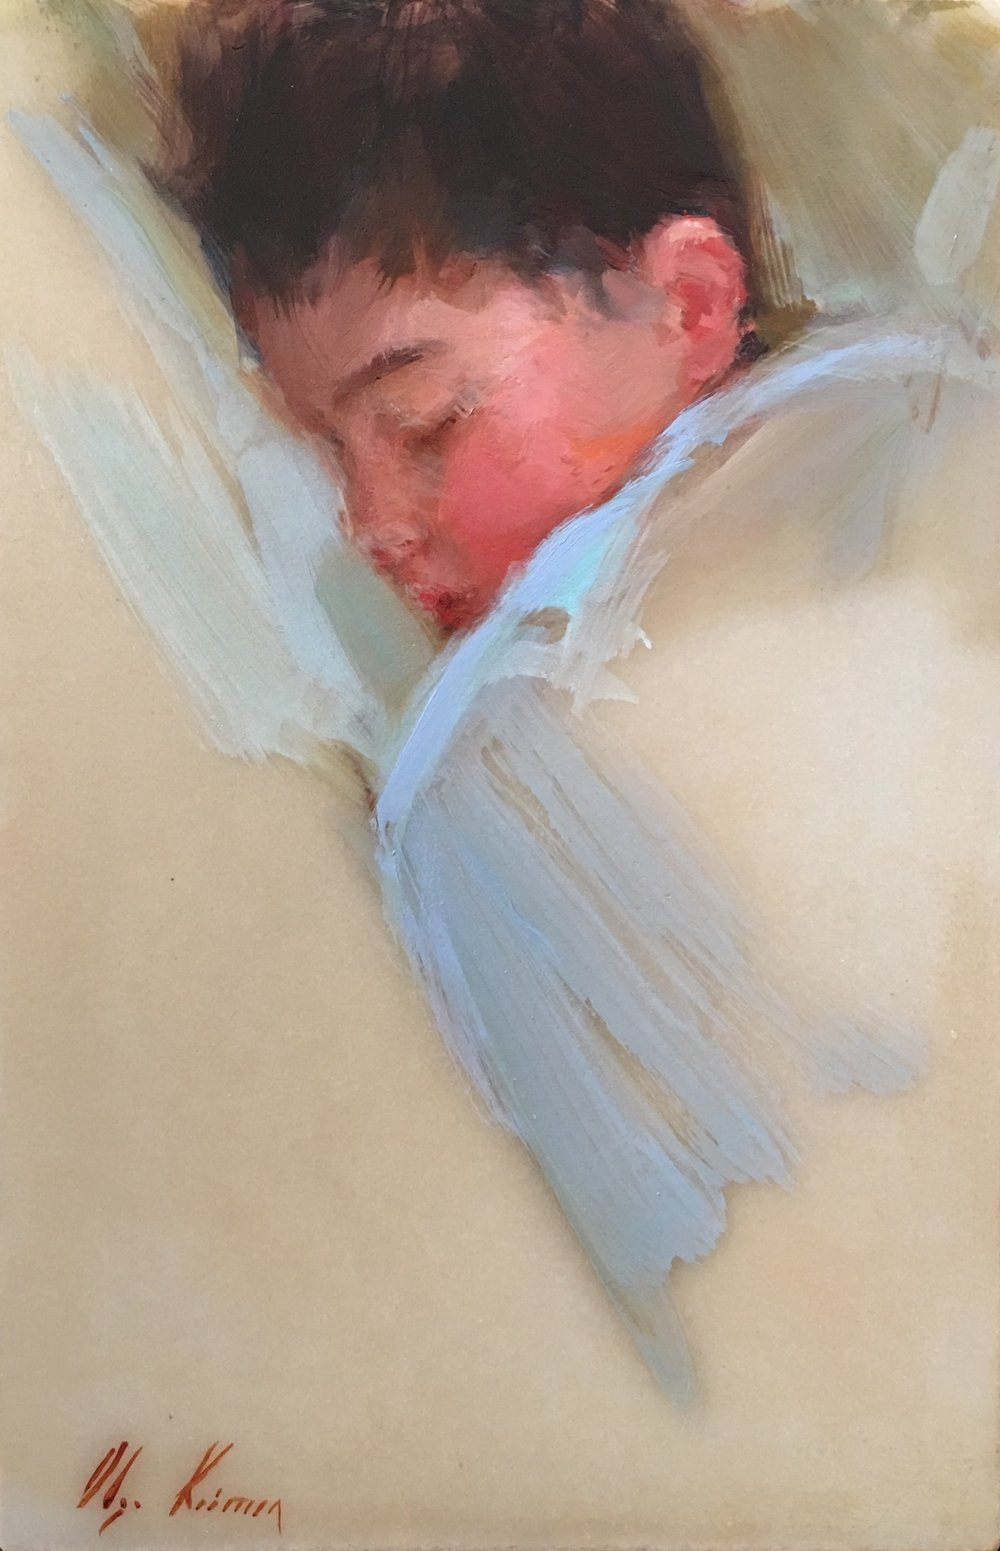 Sleeping Boy - oil on marble, 8x12.  Available through Reinert Fine Art